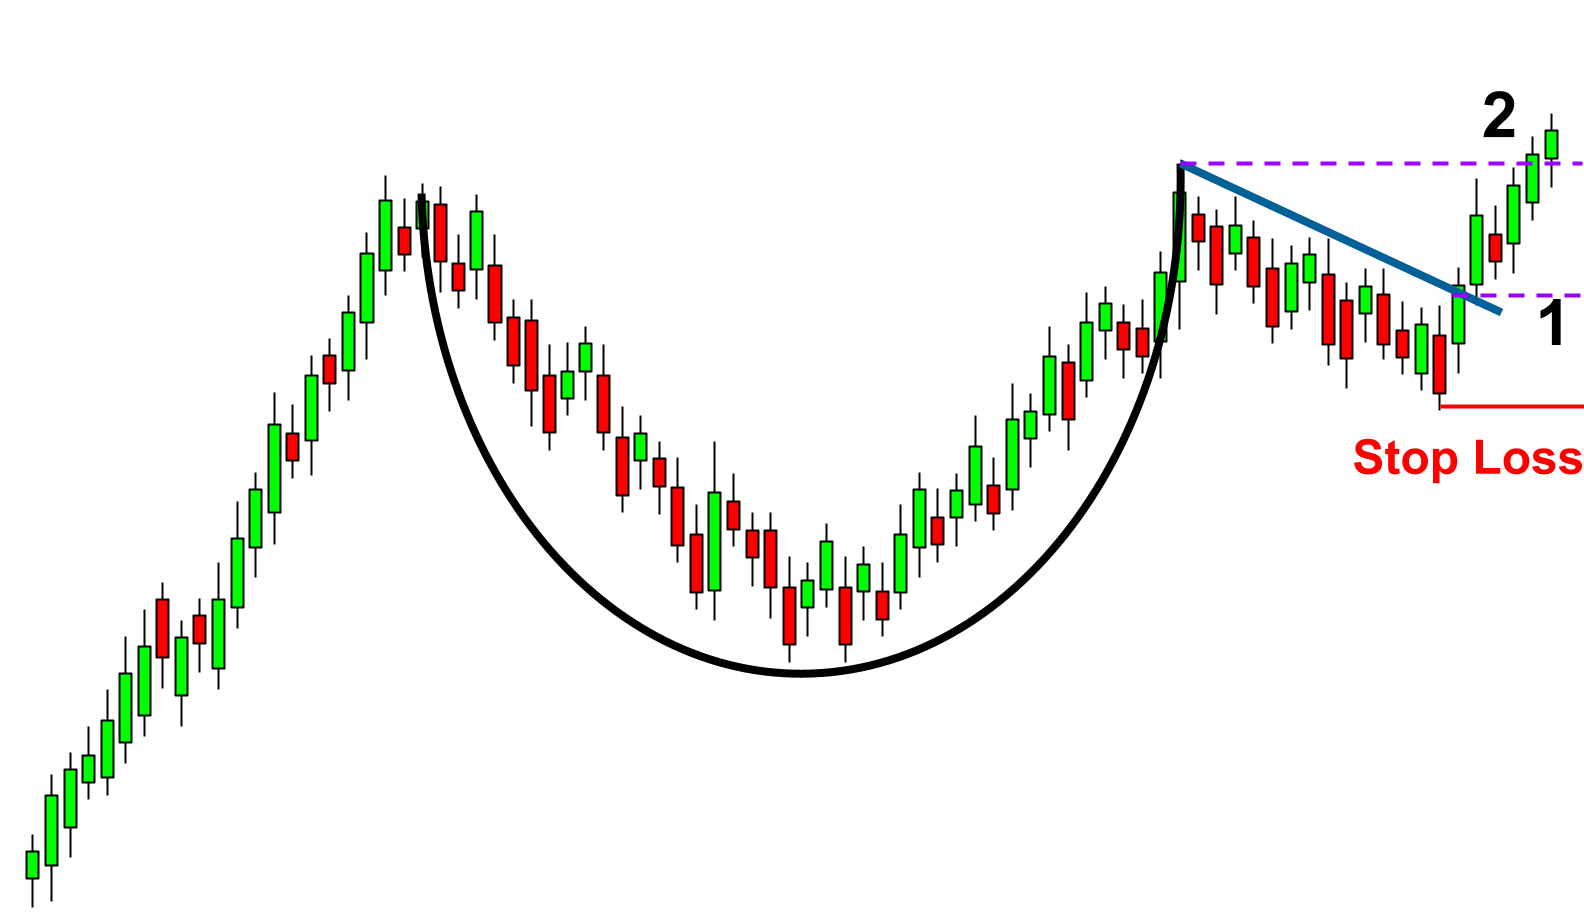 The resistance trend line encompassing the handle pattern to identify a buy signal.